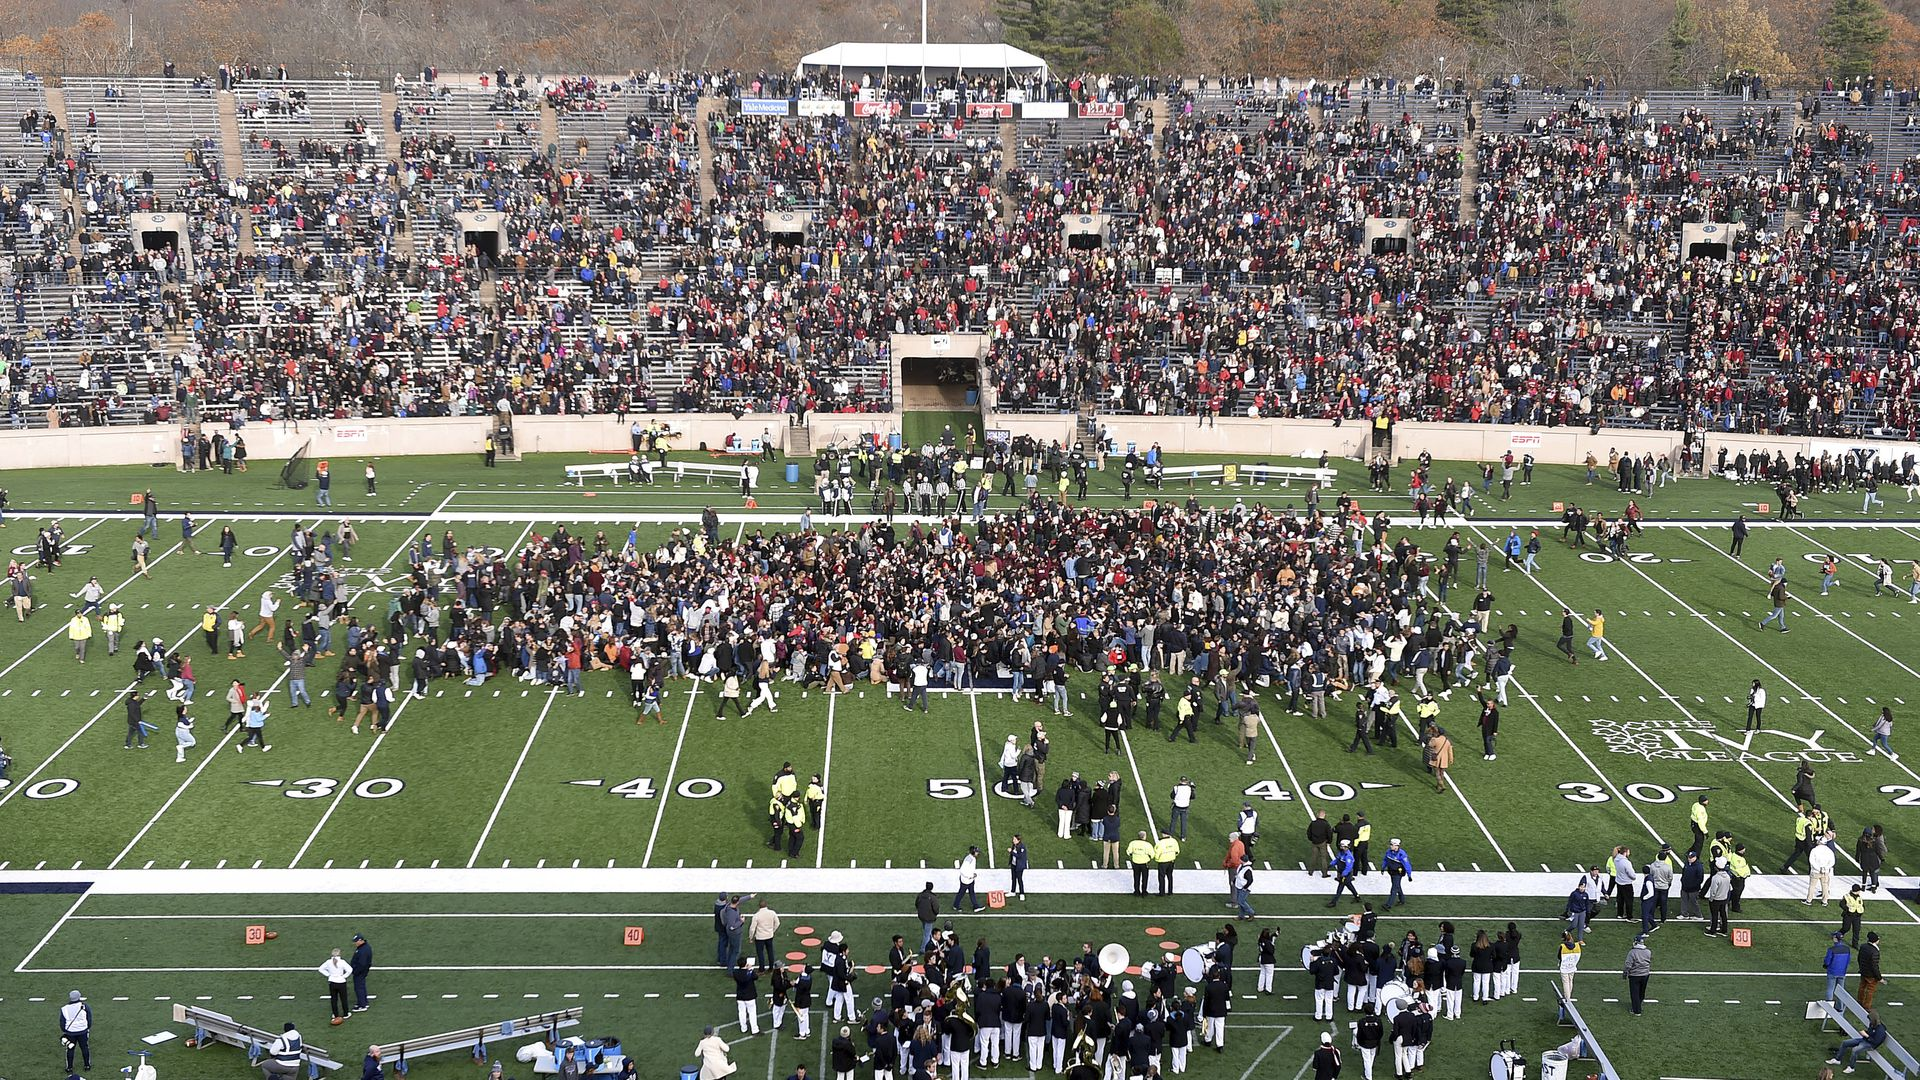 Protesters swarm the field at a Harvard-Yale football game.